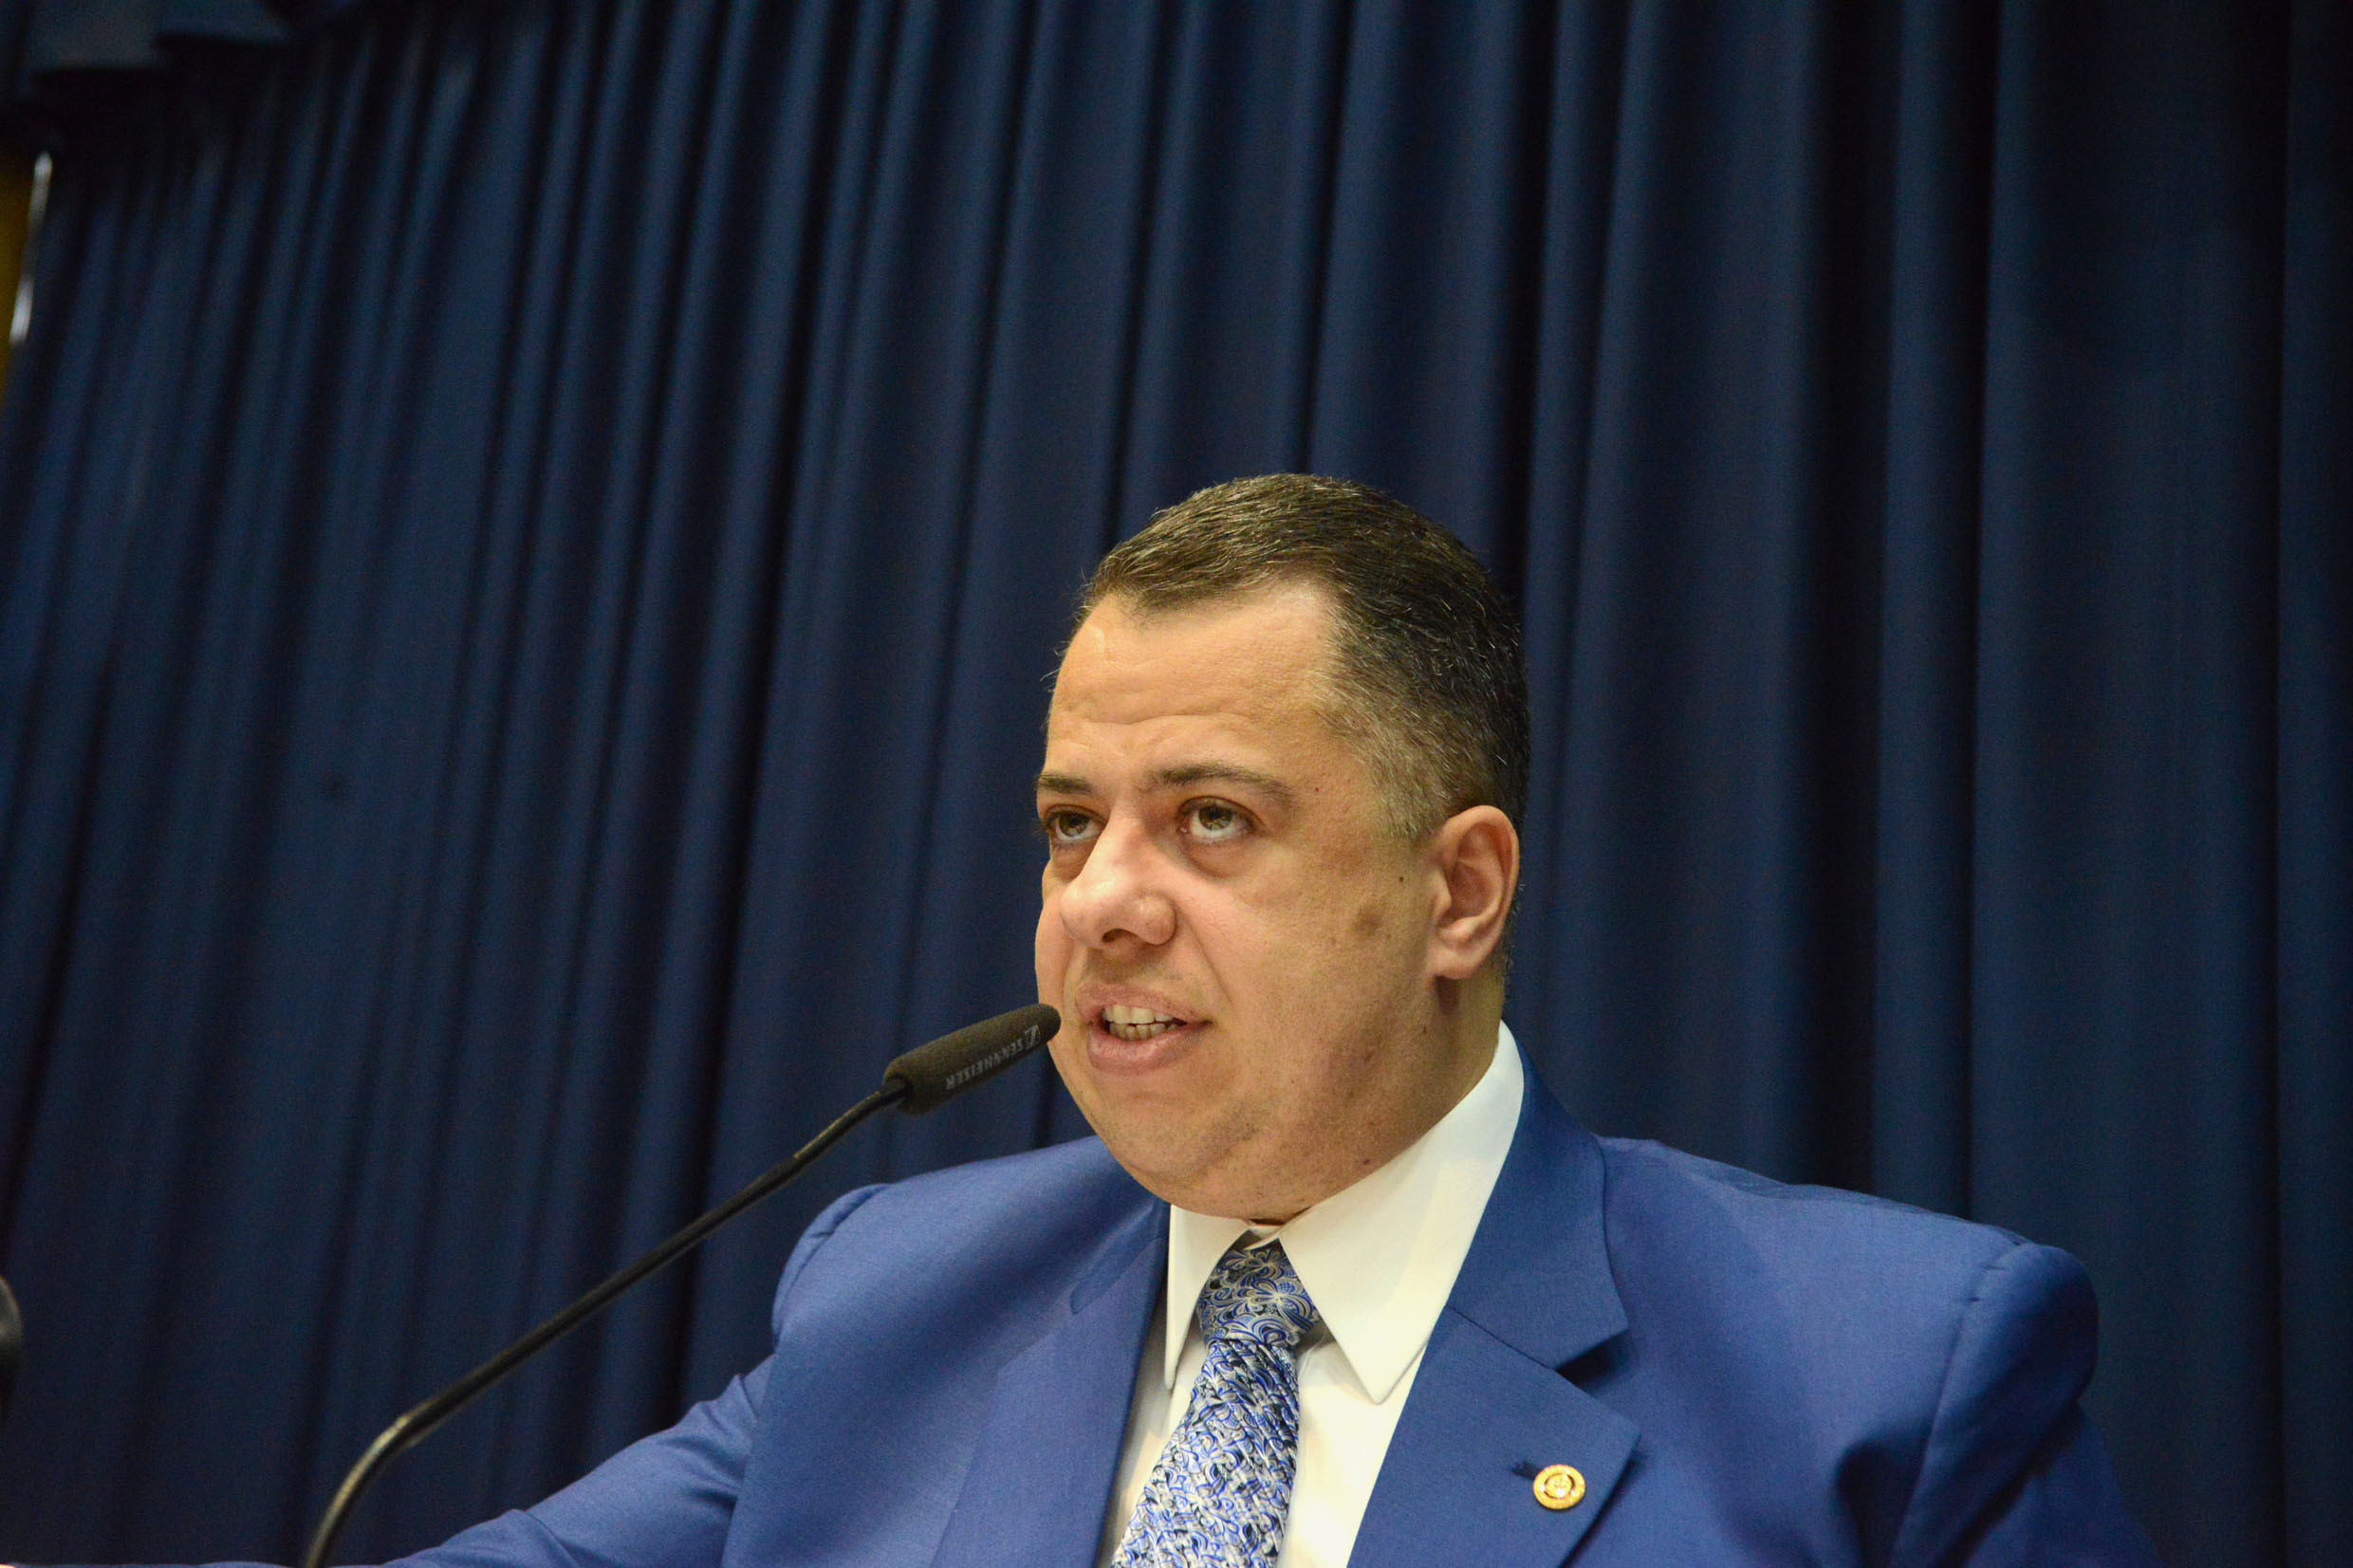 Wellington Moura preside a CPI<a style='float:right' href='https://www3.al.sp.gov.br/repositorio/noticia/N-10-2019/fg241520.jpg' target=_blank><img src='/_img/material-file-download-white.png' width='14px' alt='Clique para baixar a imagem'></a>